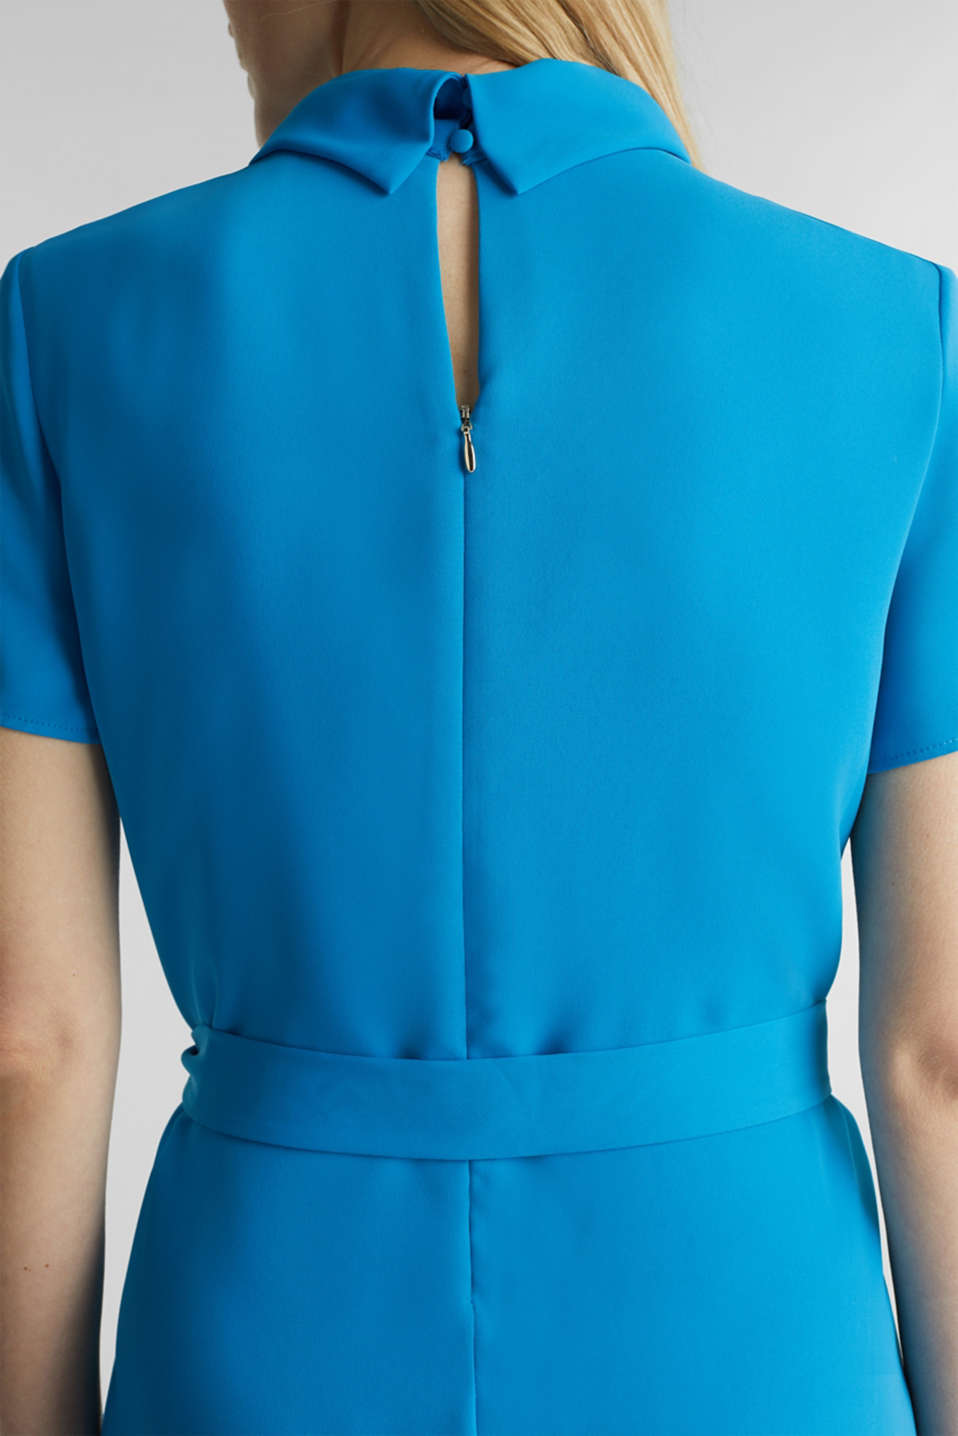 Cloth polo neck dress, DARK TURQUOISE, detail image number 6